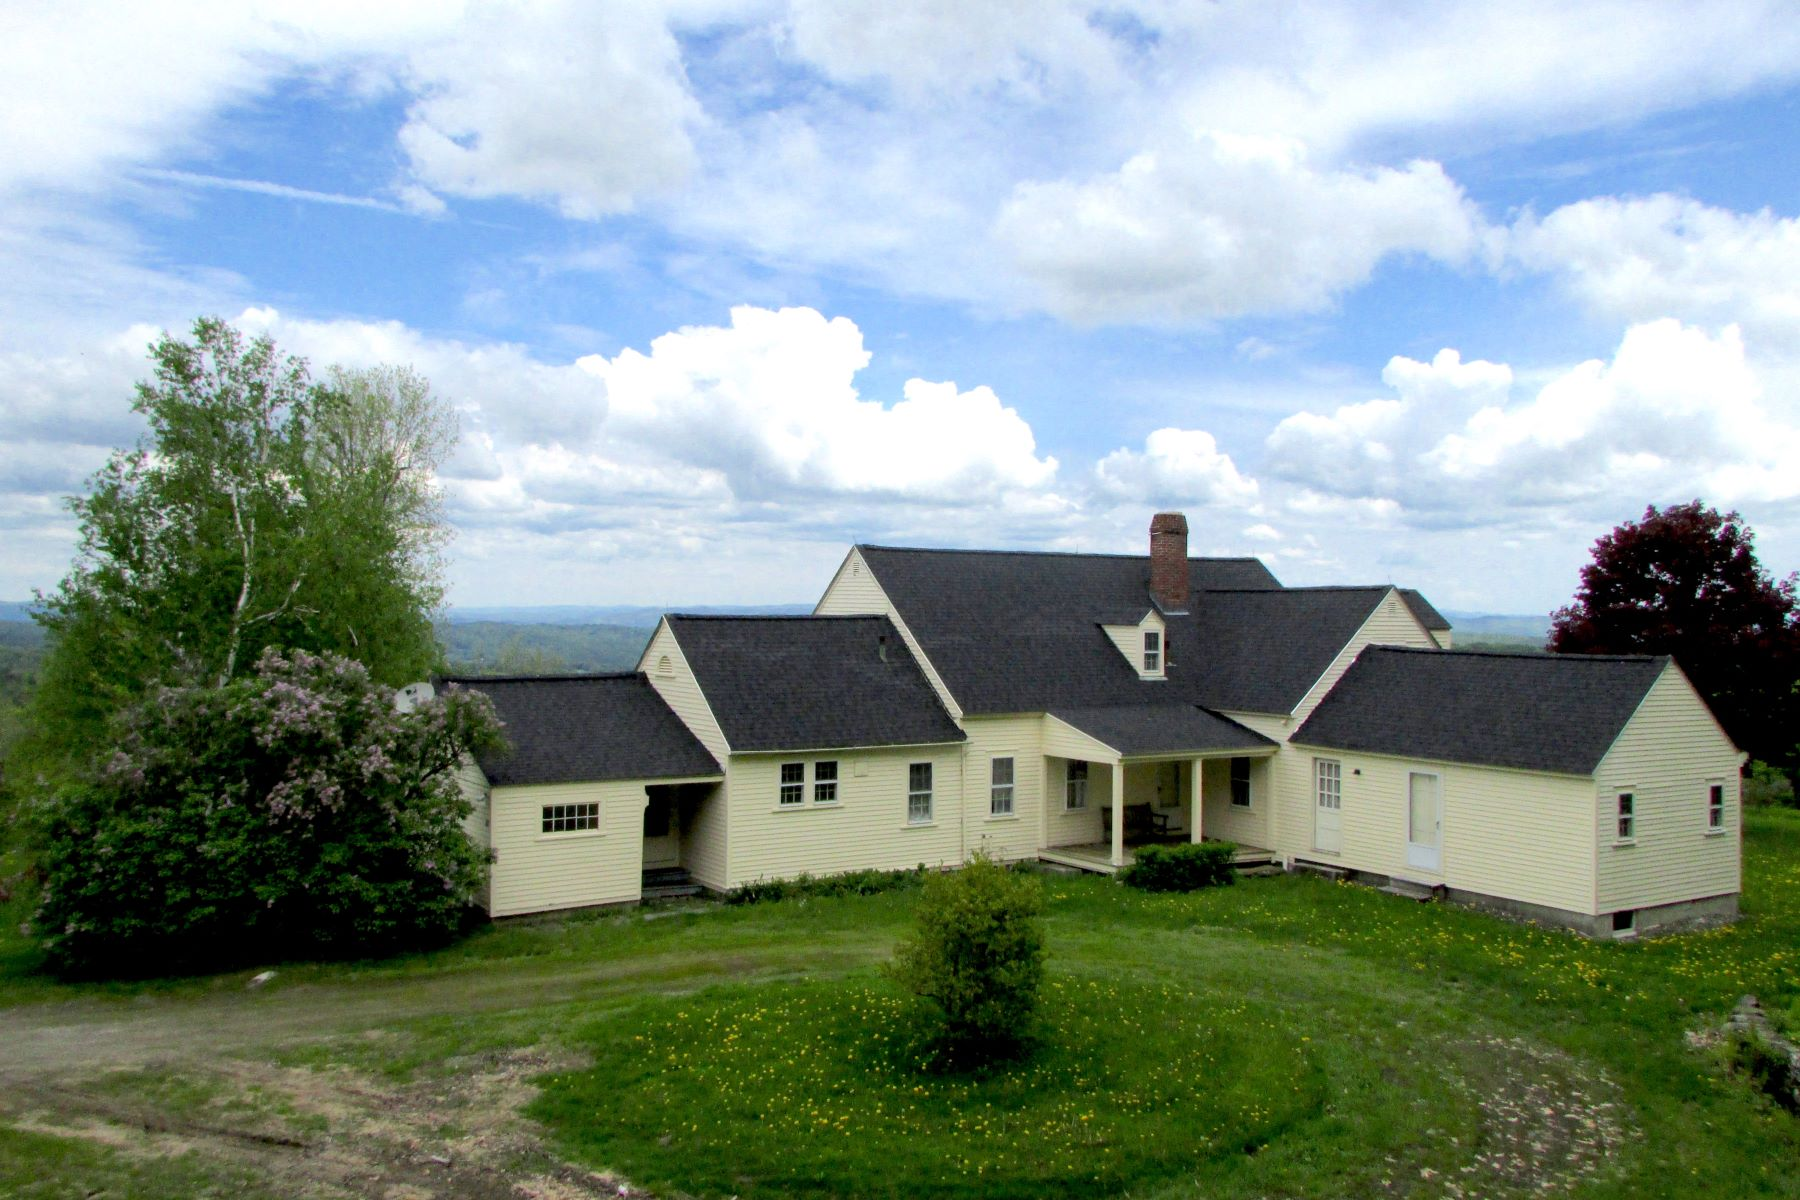 Casa Unifamiliar por un Venta en Amazing Property with Impressive Views 375 Serkin Rd Guilford, Vermont, 05301 Estados Unidos